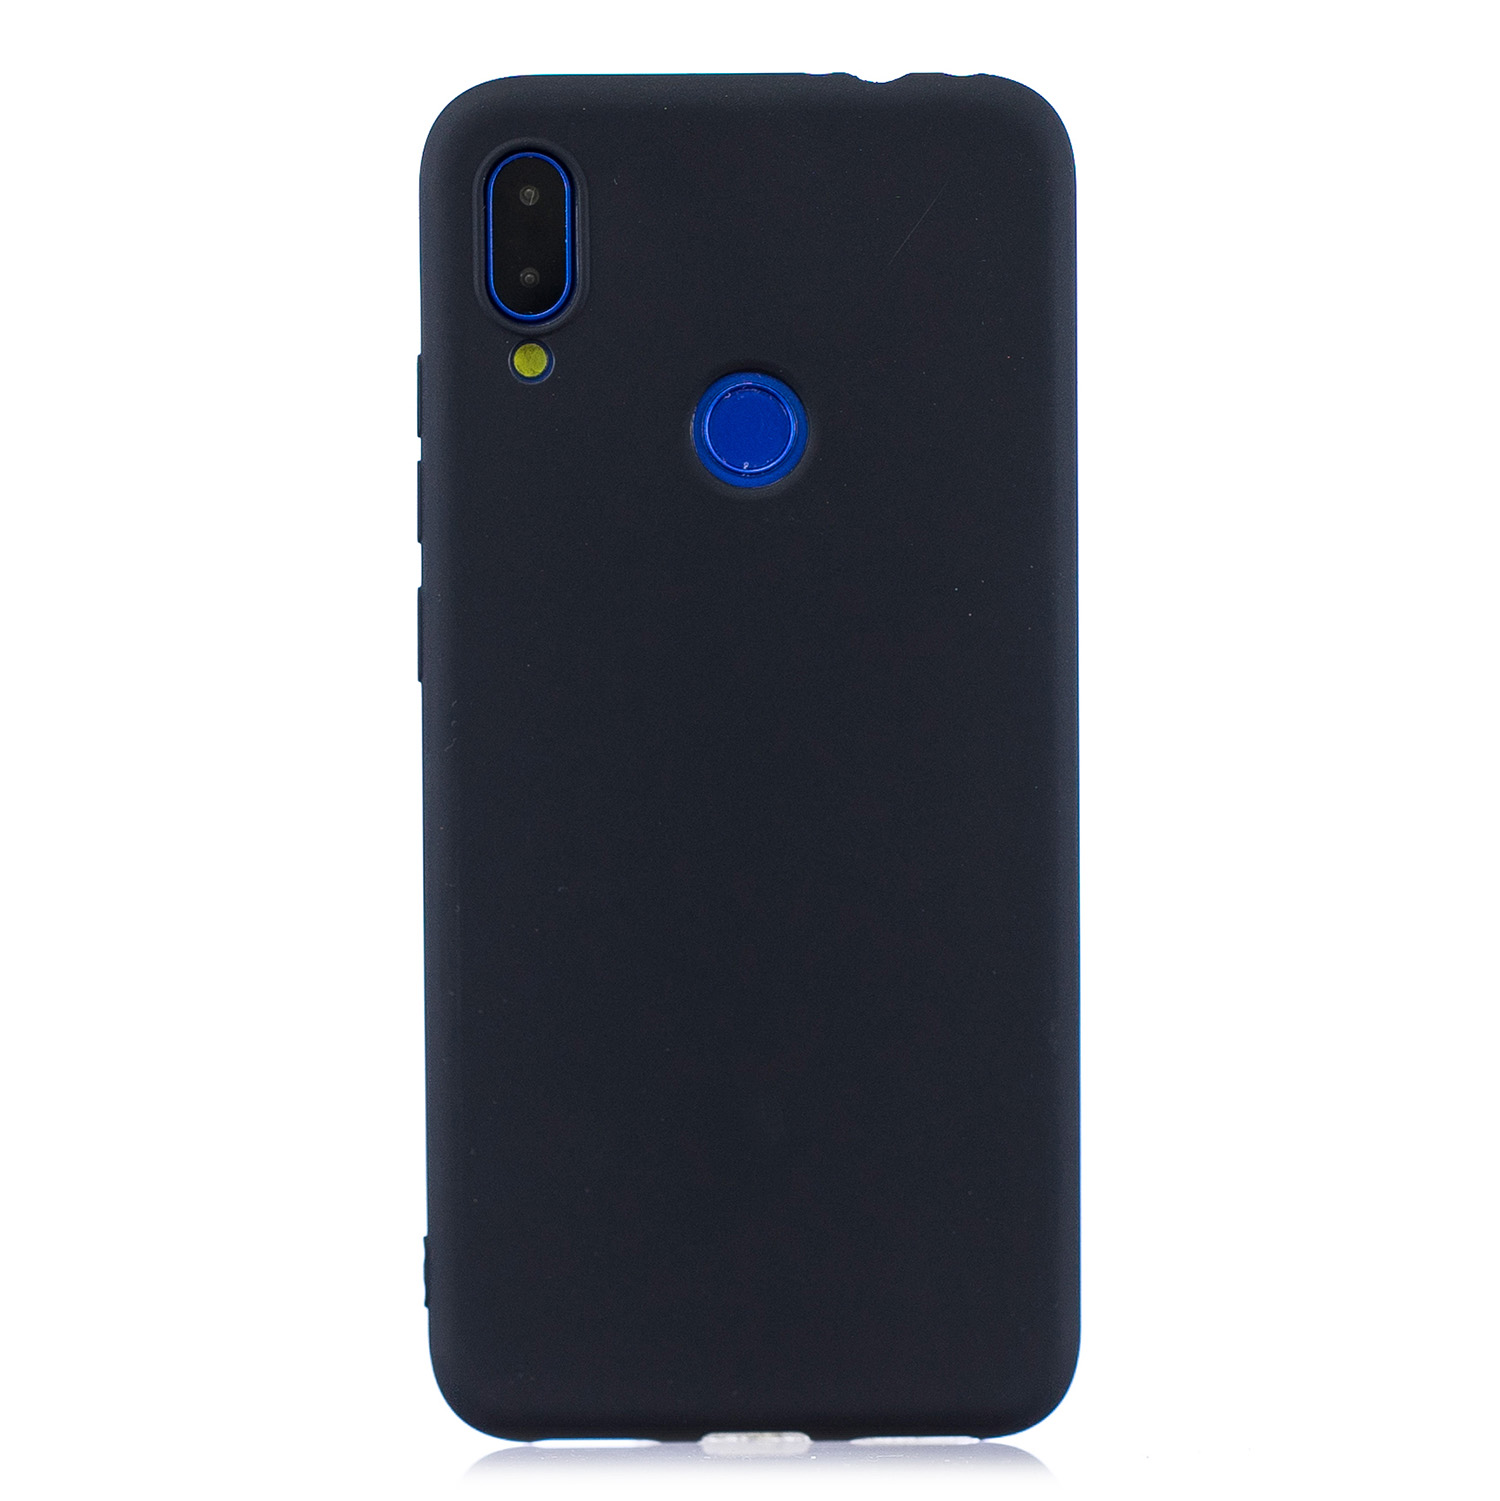 For Redmi 7 Lovely Candy Color Matte TPU Anti-scratch Non-slip Protective Cover Back Case black